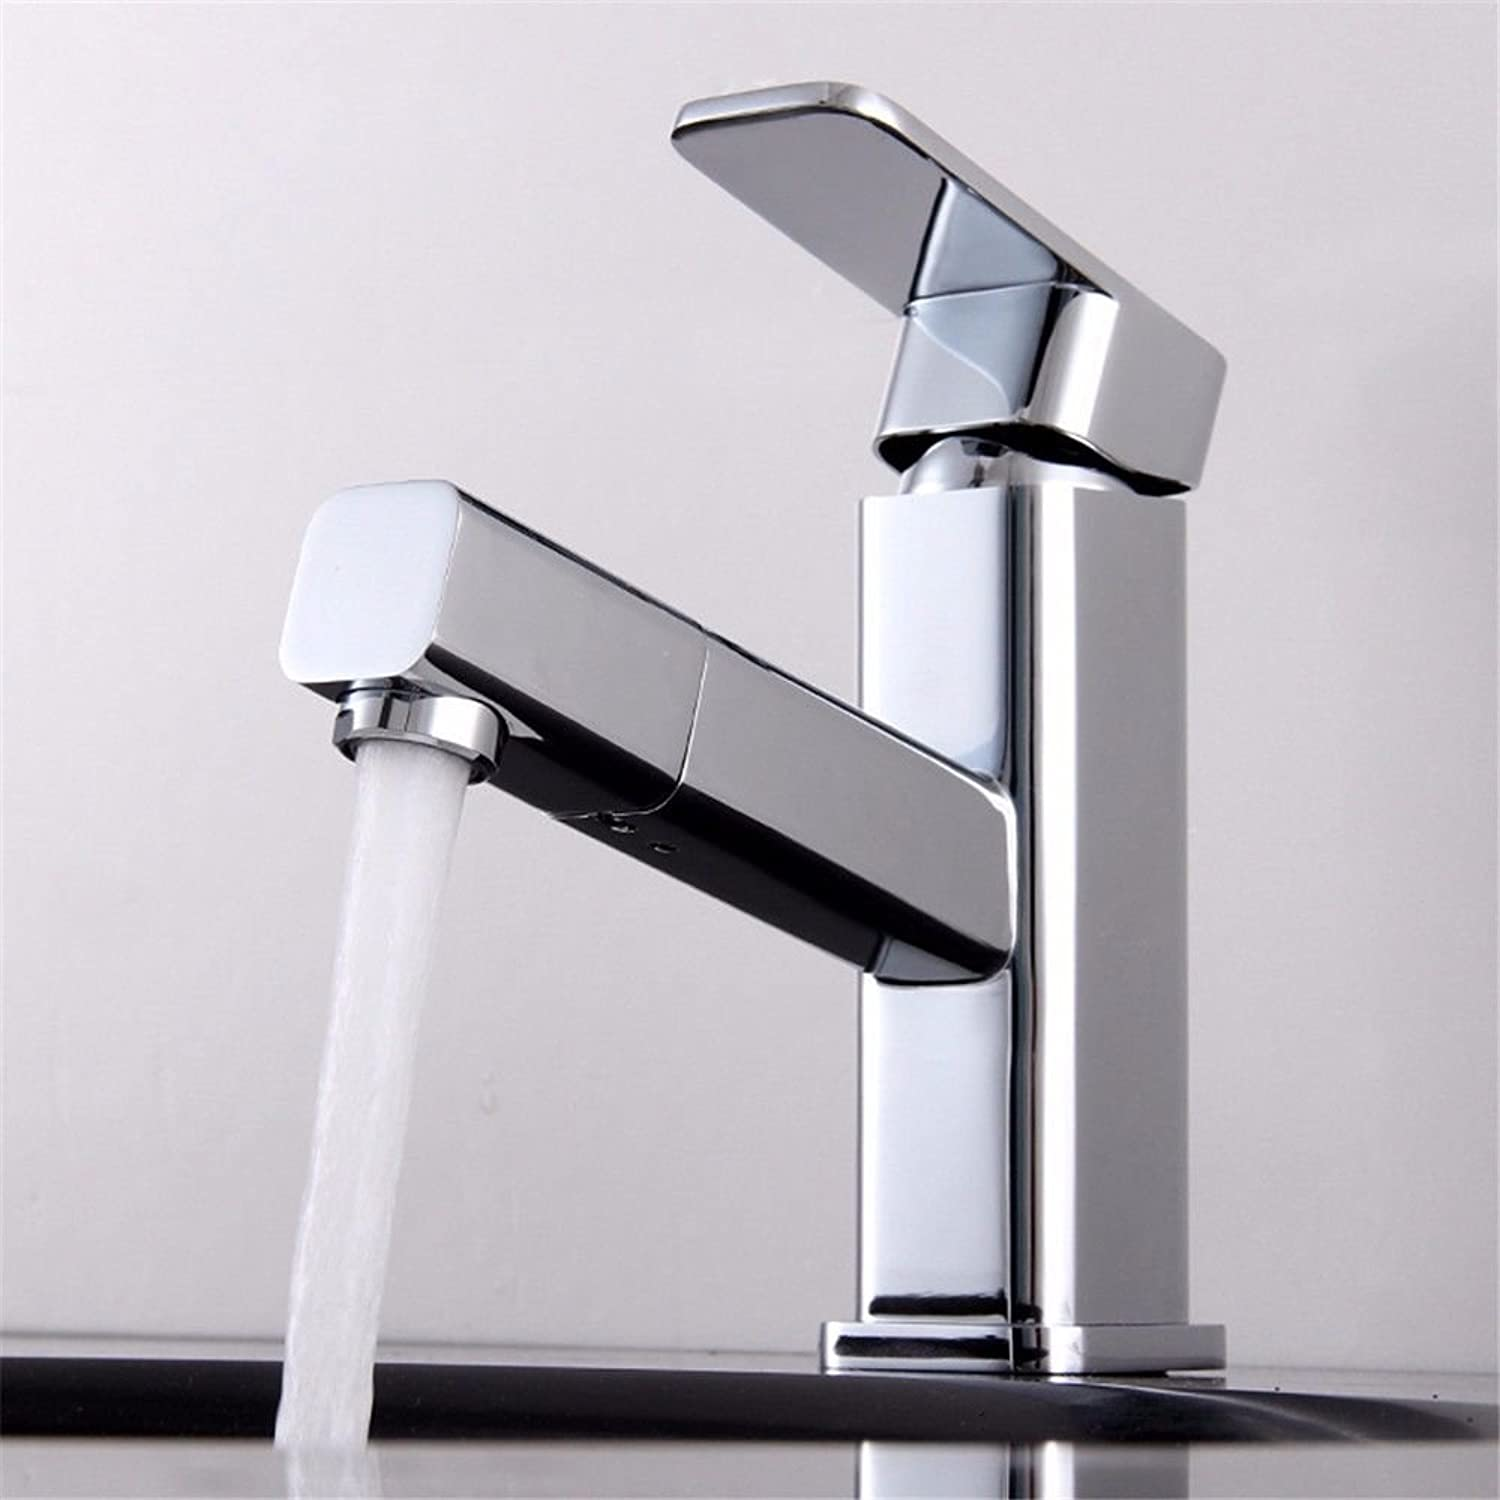 Lpophy Bathroom Sink Mixer Taps Faucet Bath Waterfall Cold and Hot Water Tap for Washroom Bathroom and Kitchen Copper Hot and Cold Drawing Square